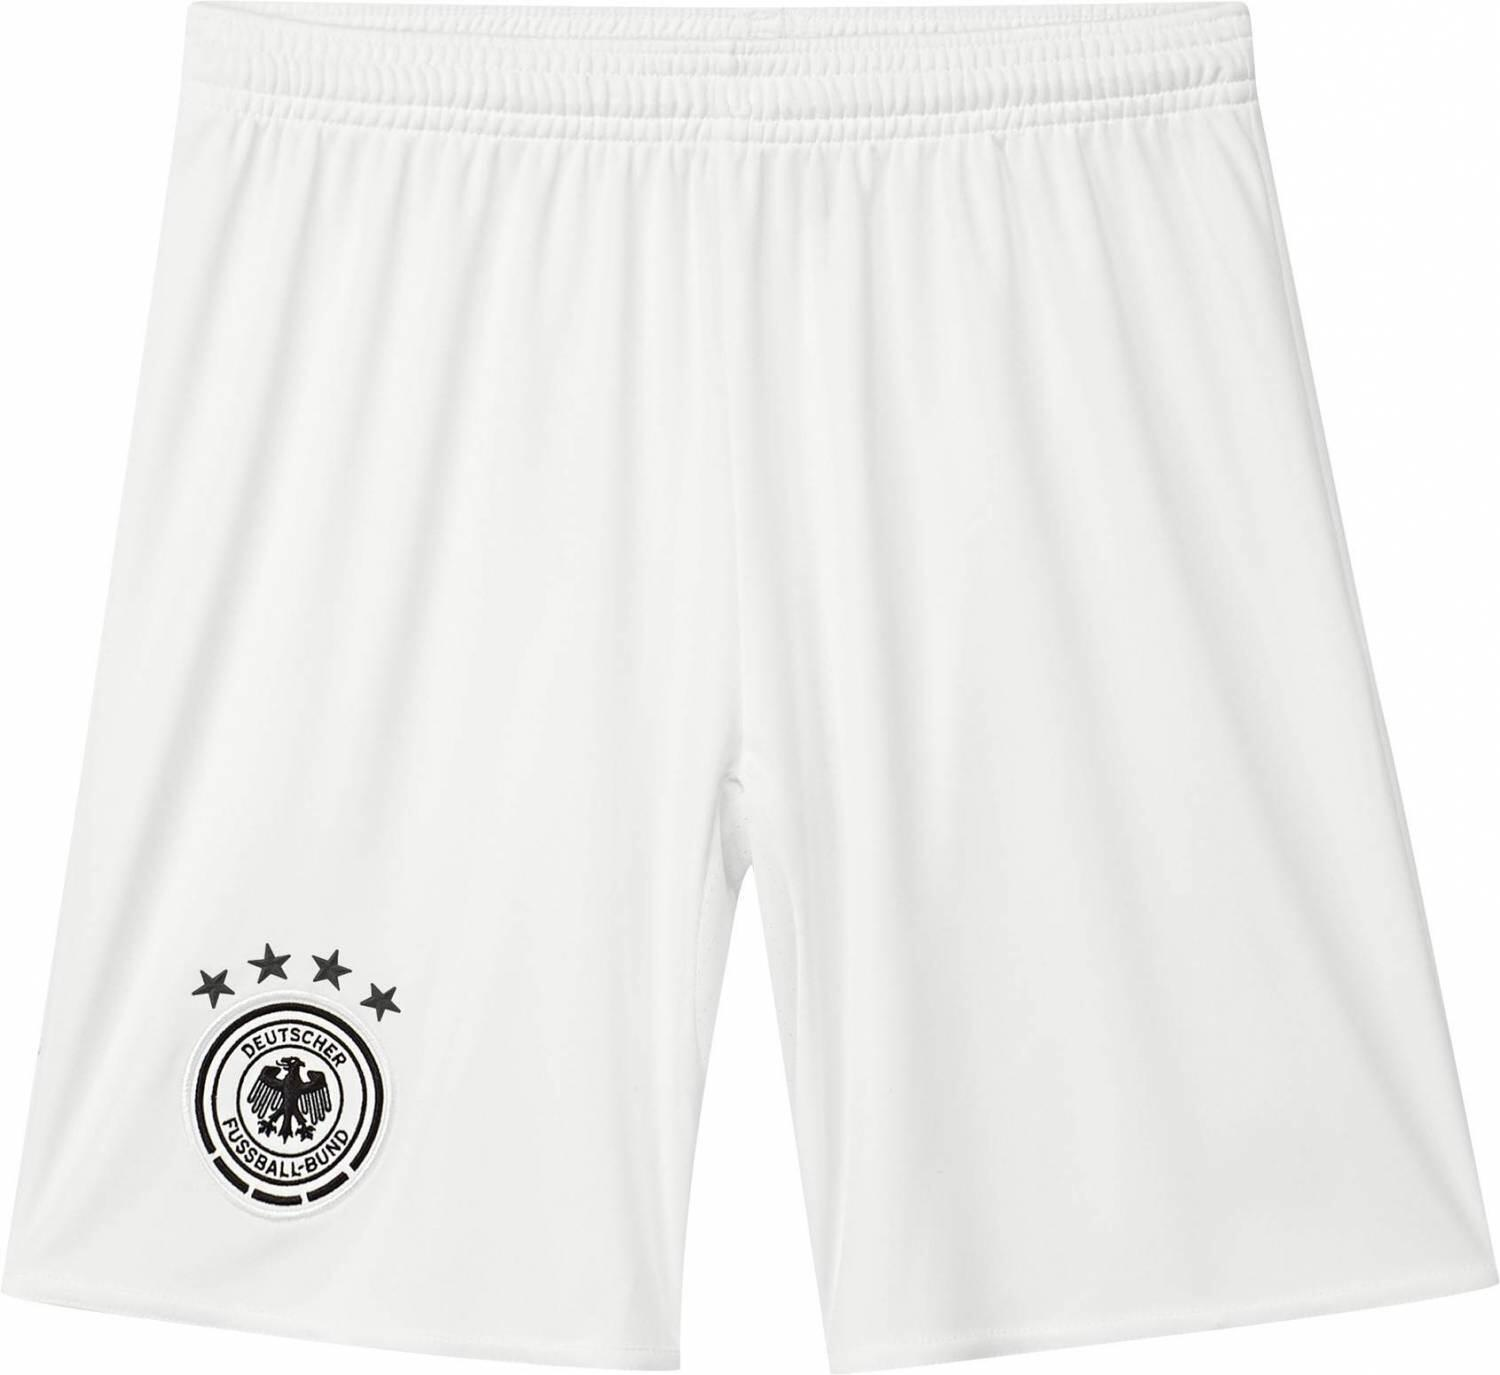 Boyssportmode - adidas DFB Away Short Youth Auswärtsshort Kinder (Größe 164, off white black) - Onlineshop Sportolino